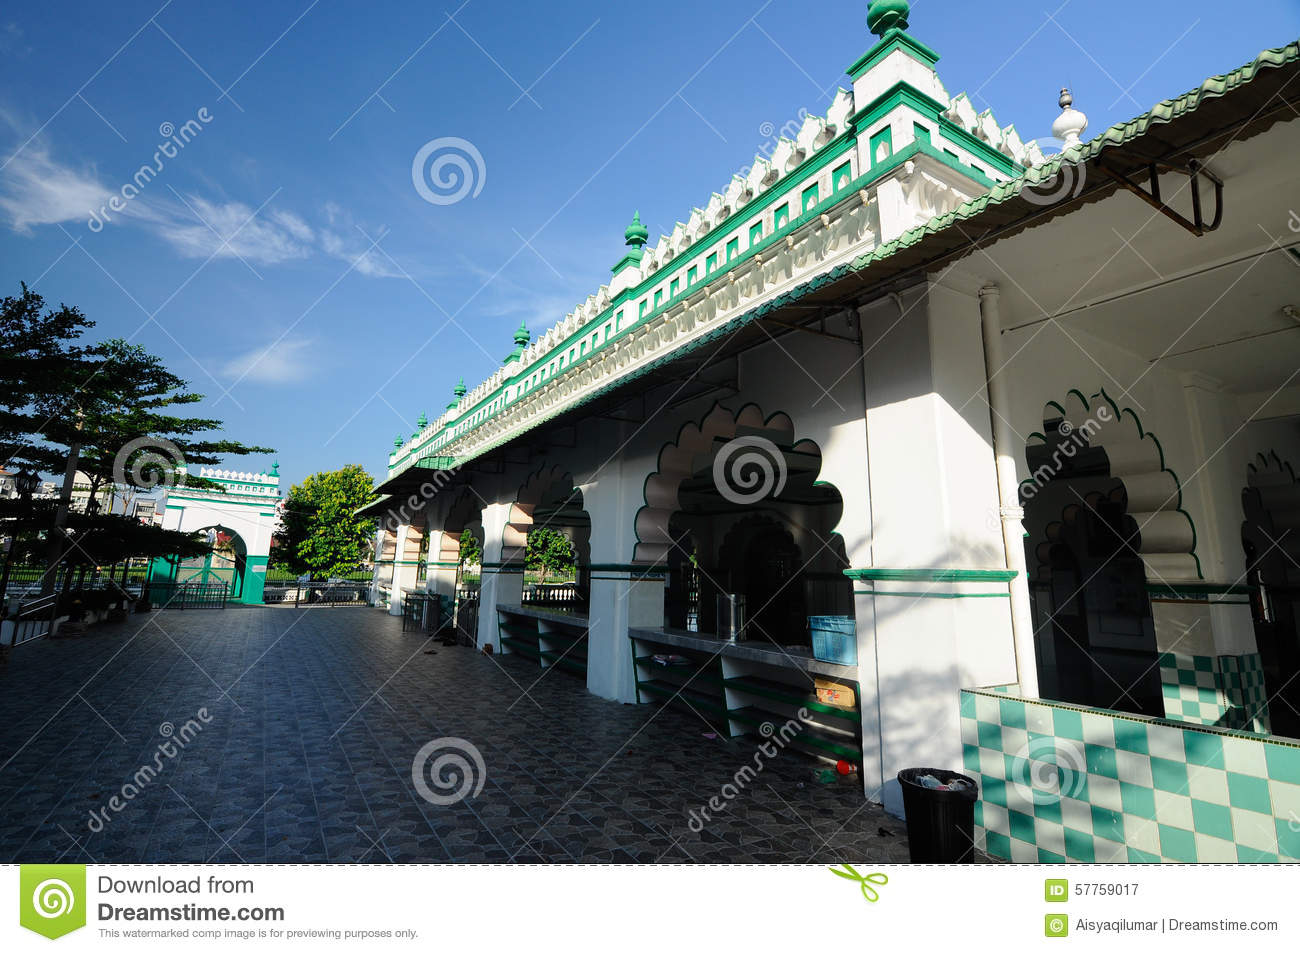 ipoh muslim It is located just opposite the ipoh padang it is the indian muslim mosque and it was built sometime in the 1900 it is very well maintained and clean it has a.